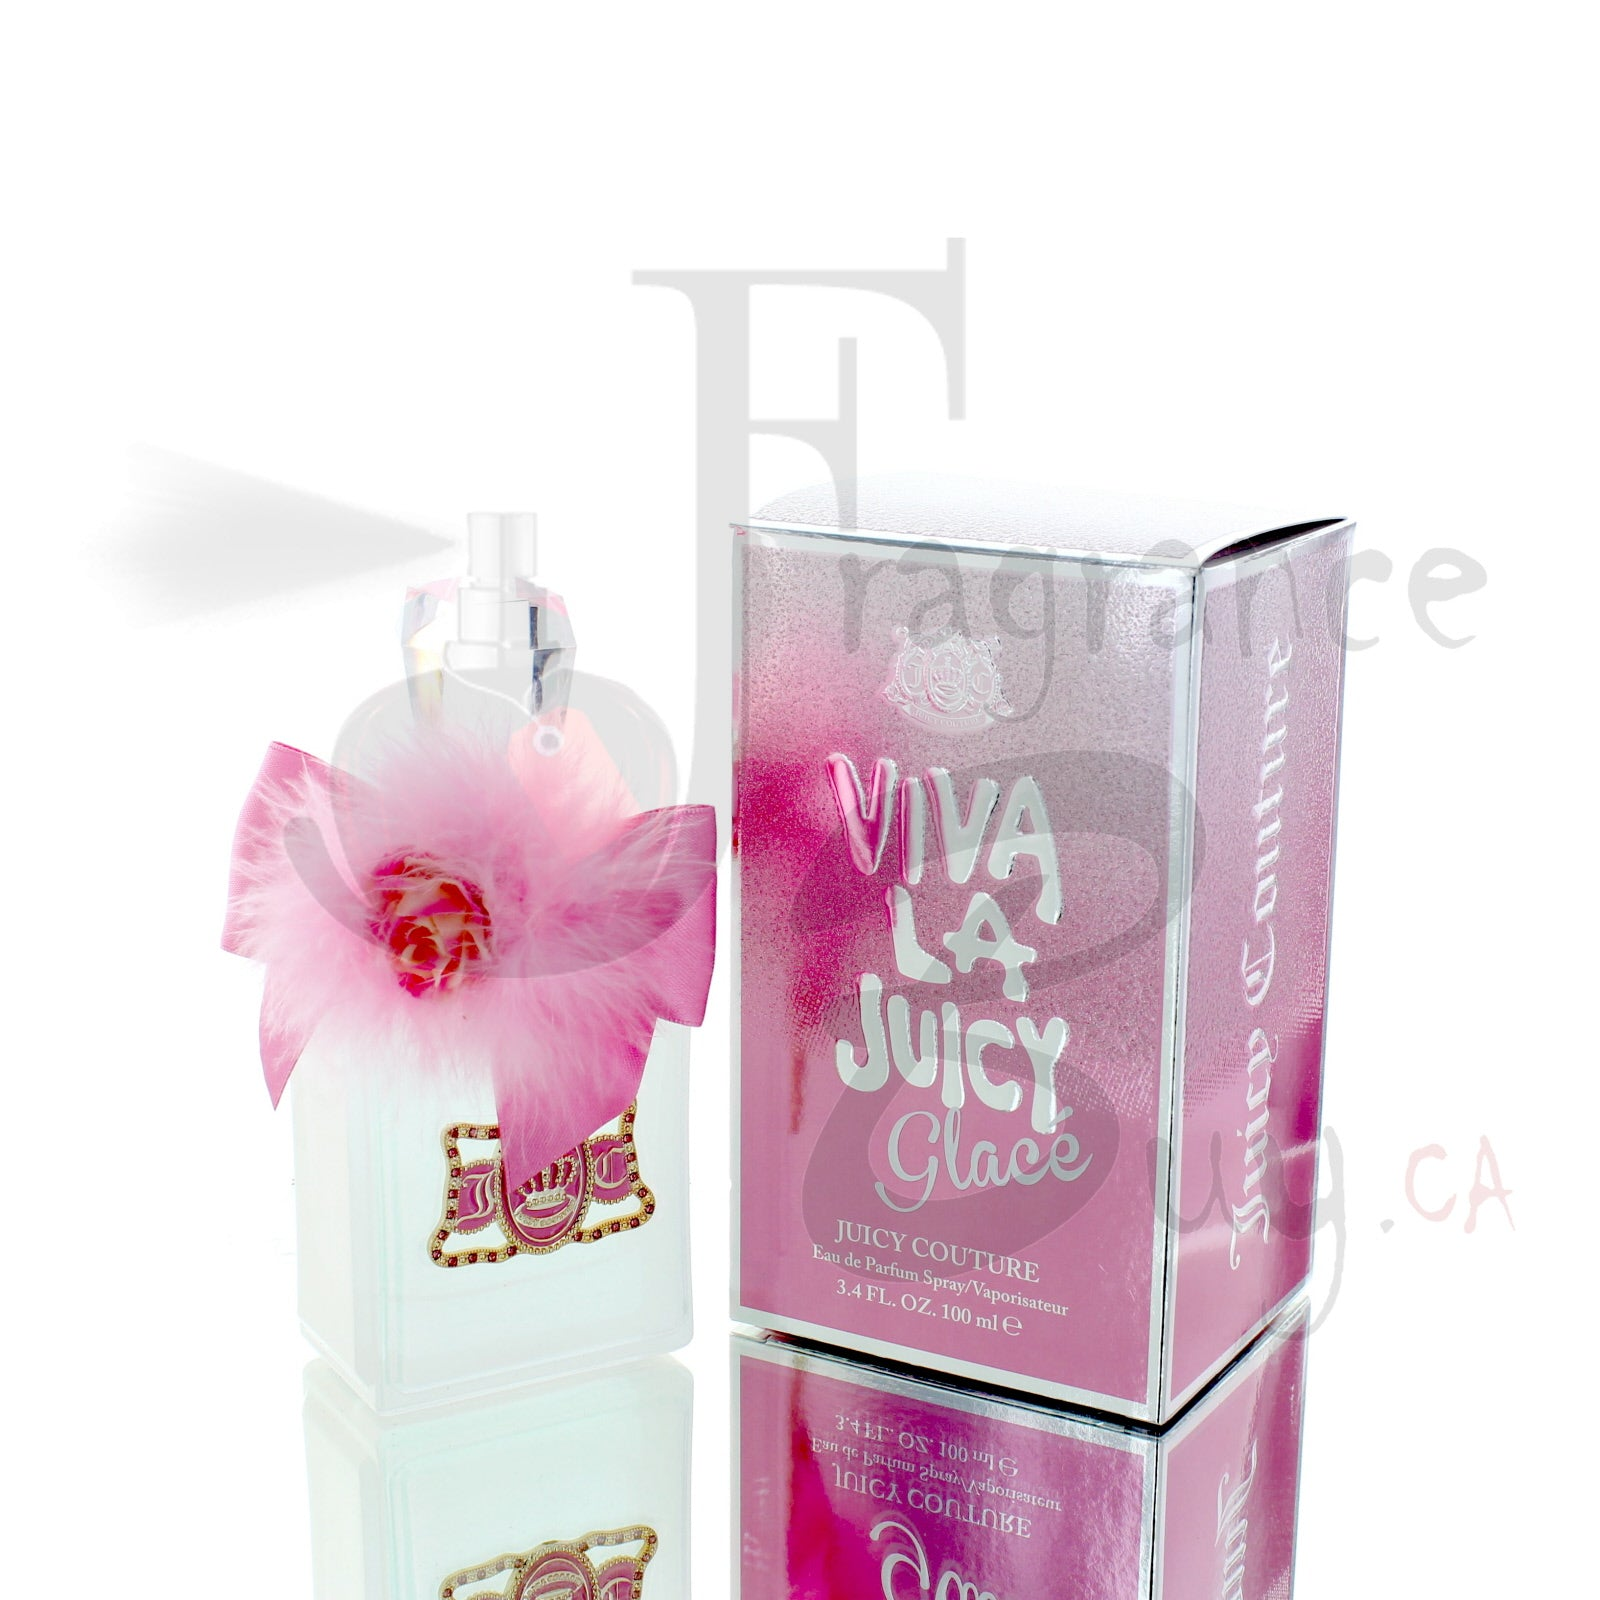 Juicy Couture Viva La Juicy Glace (2017) For Woman